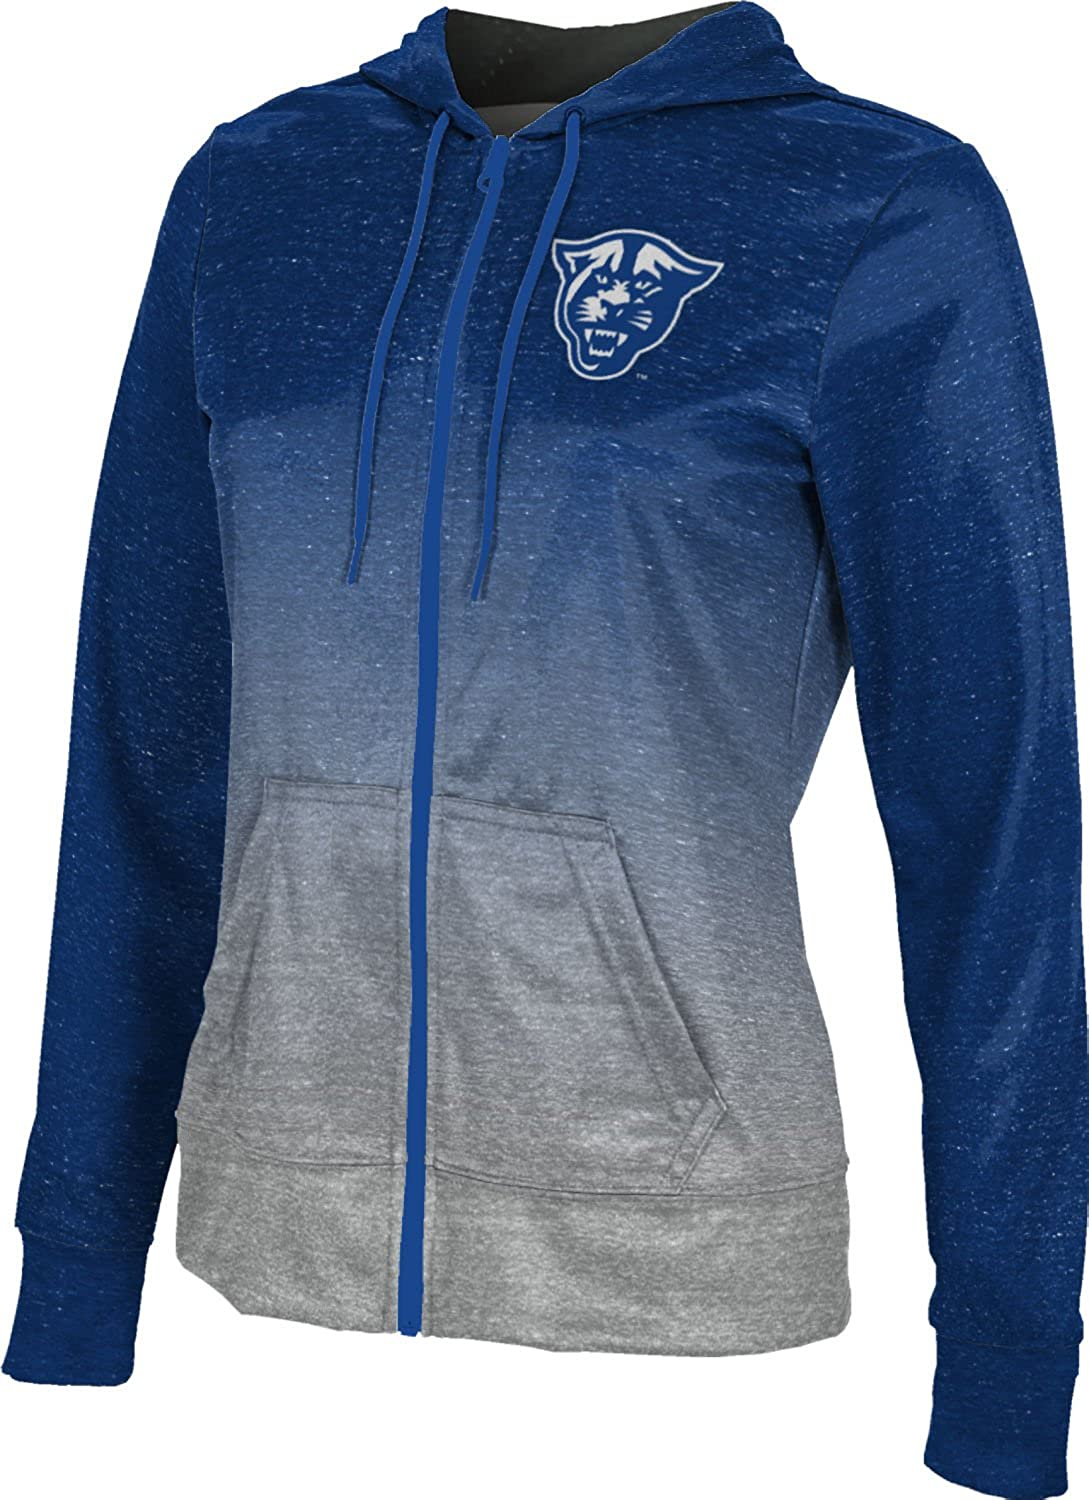 Georgia State University Girls Zipper Hoodie School Spirit Sweatshirt Ombre